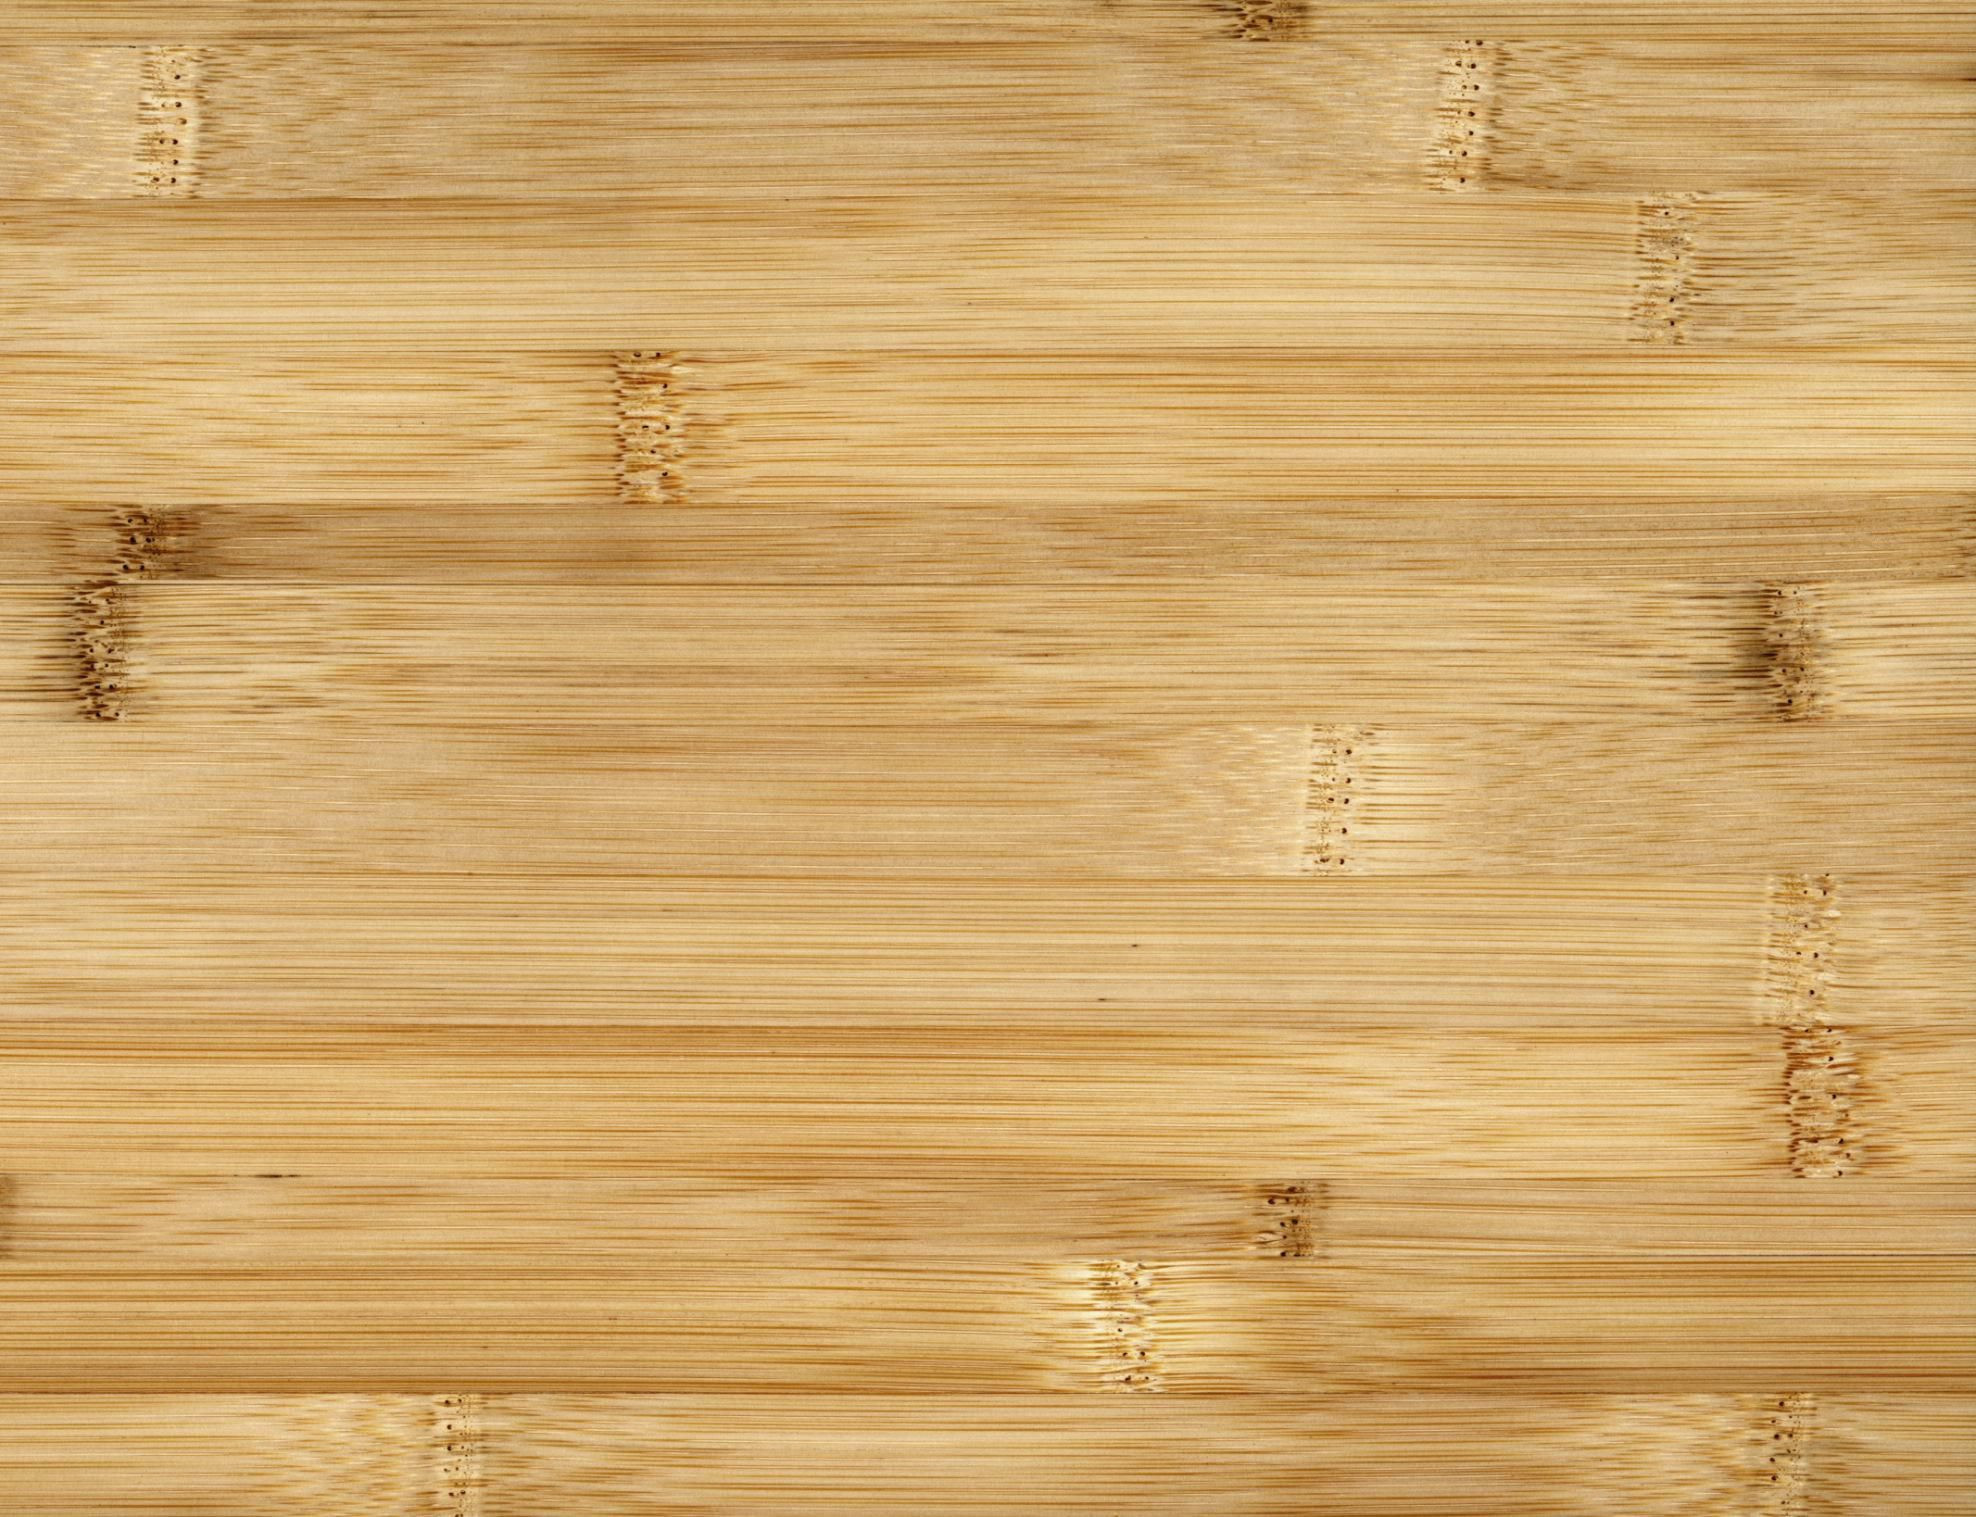 cleaning old hardwood floors with vinegar of how to clean bamboo flooring regarding 200266305 001 56a2fd815f9b58b7d0d000cd